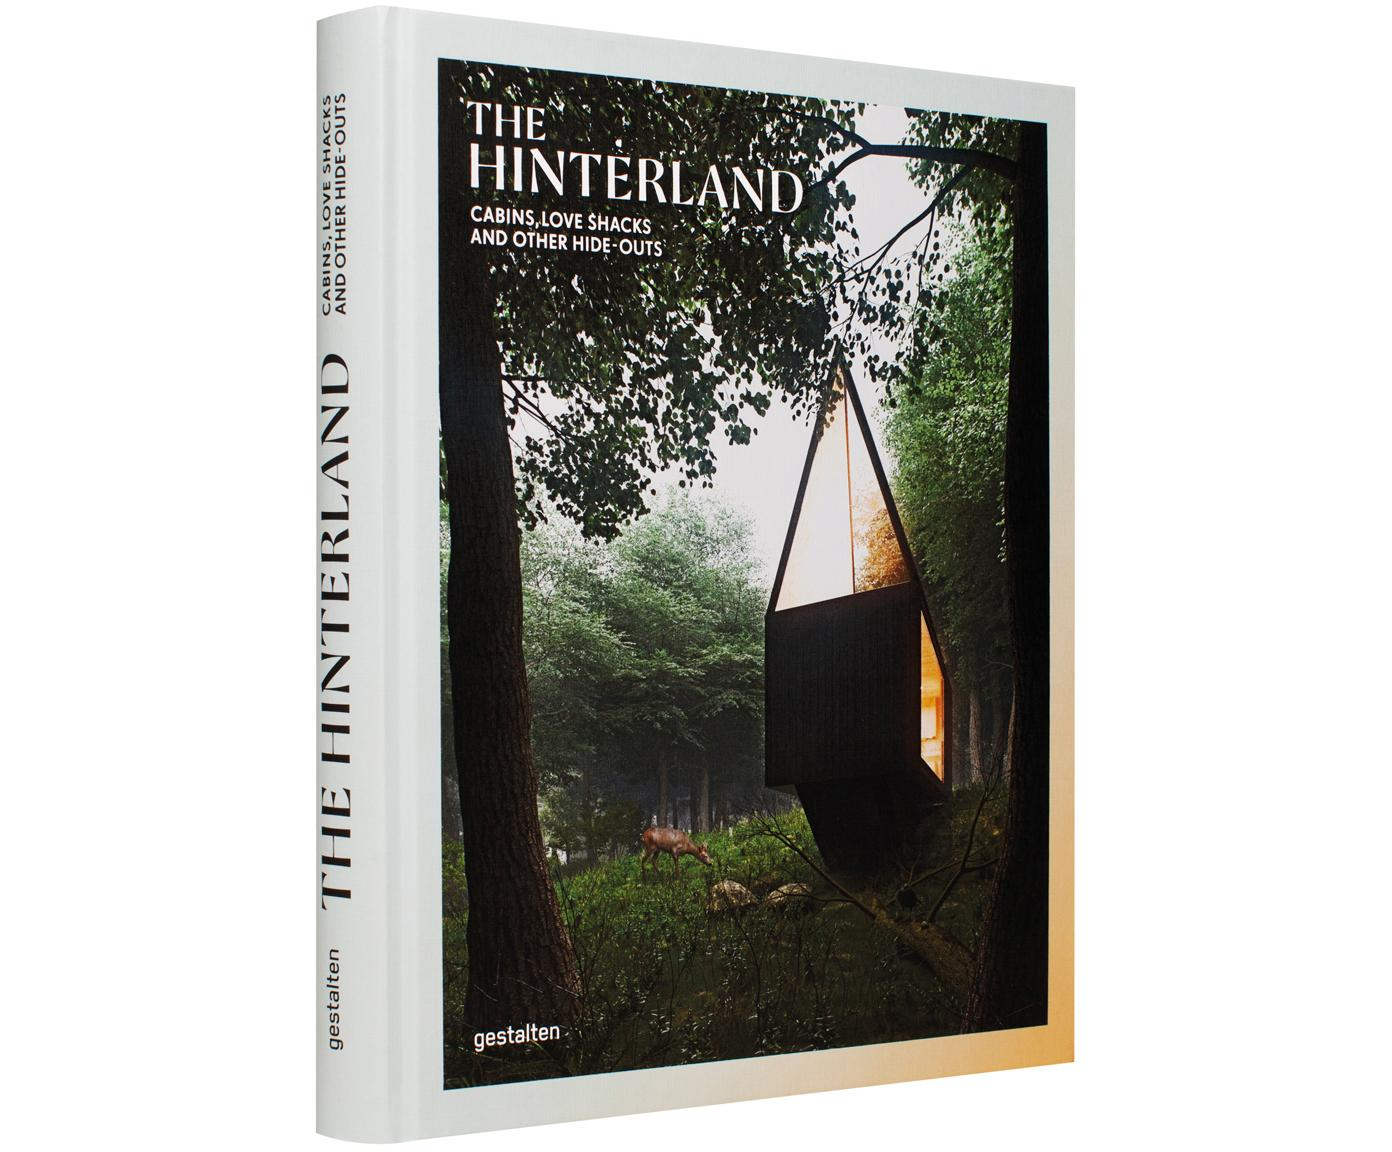 Libro ilustrado The Hinterland, Papel, tapa dura, Multicolor, An 24 x L 30 cm